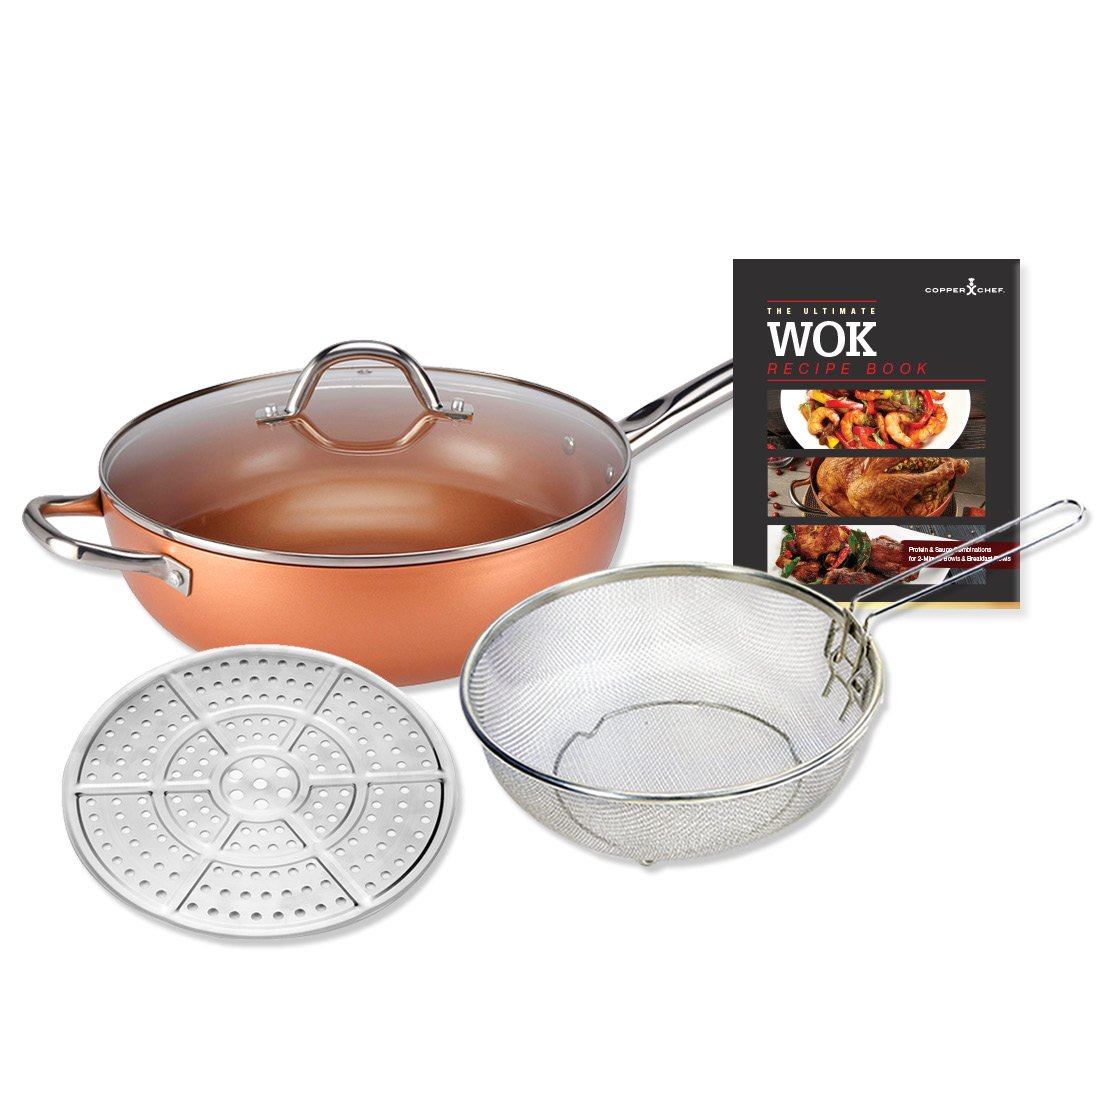 "Copper Chef 12"" (30cm) Non-Stick Wok with Tempered Glass Lid BONUS Steam & Roast Rack, Deep Fry Basket, Recipe Book and Lifetime Warranty (As Seen on High Street TV)"